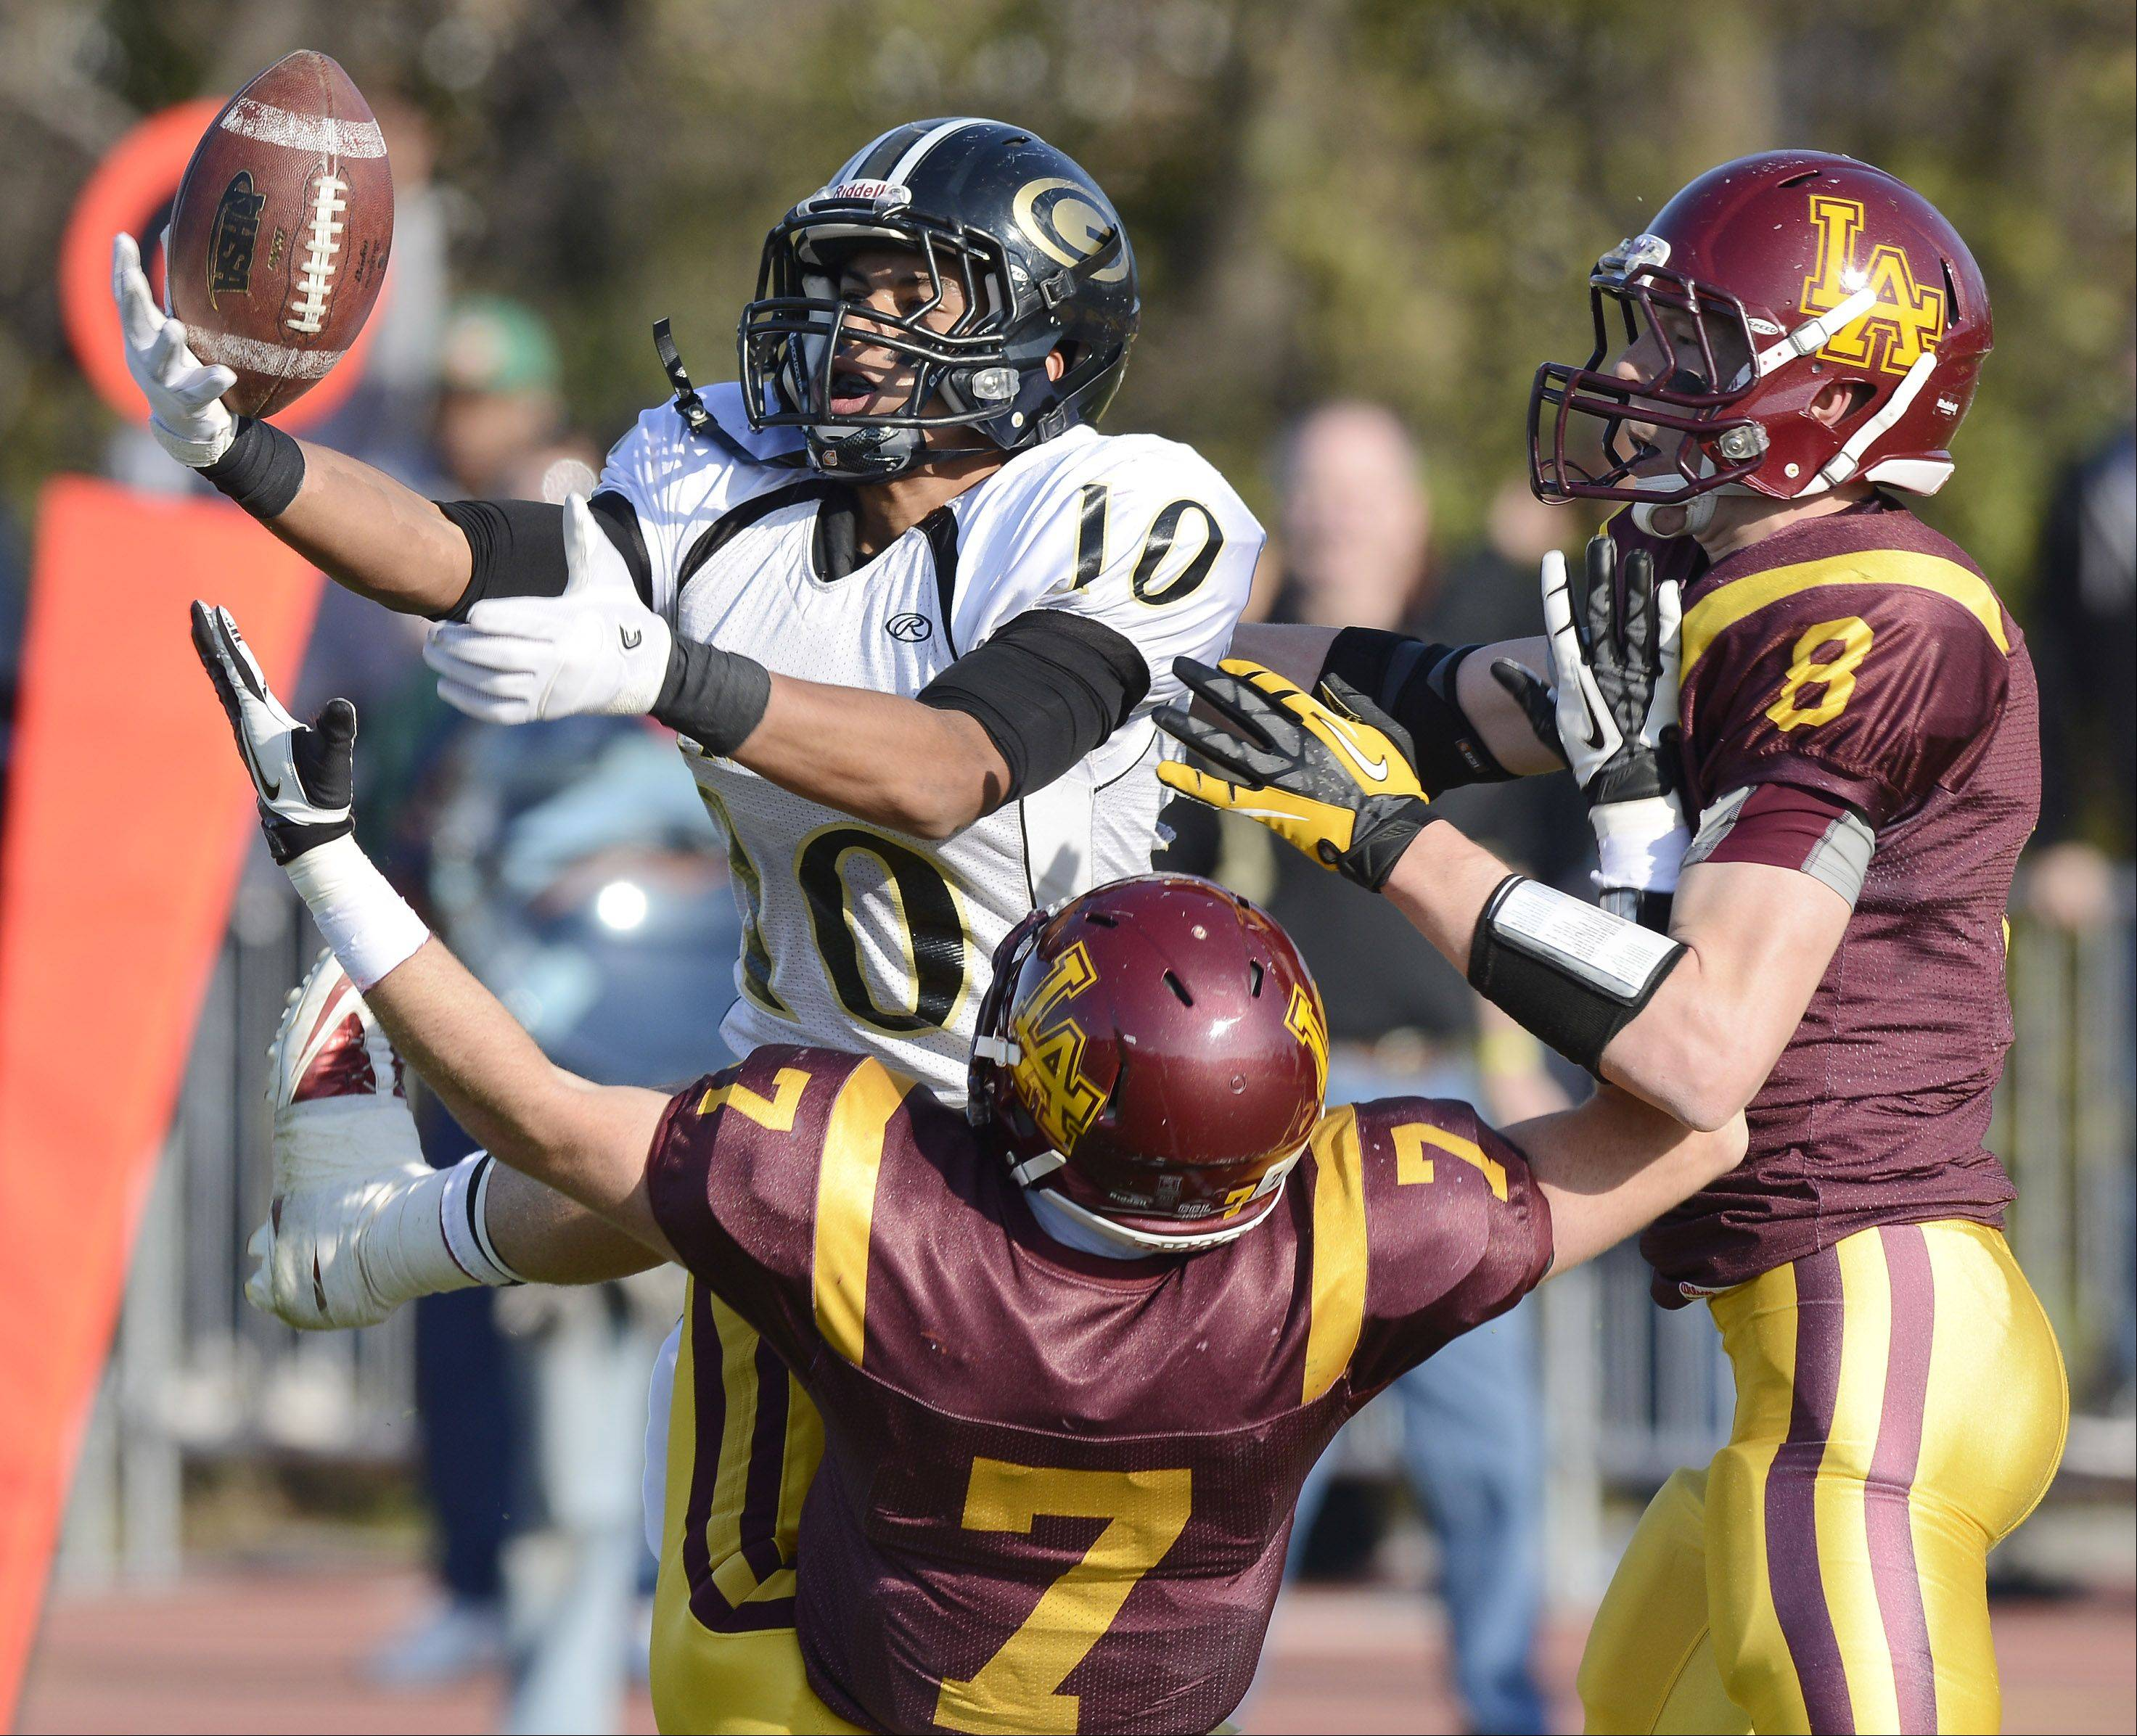 Glenbard North's Kendall Holbert can't hang onto a pass while being covered by Loyola Academy's Daniel Rafferty, front, and Luke Ford, right, during Saturday's class 8A football playoff semifinal.